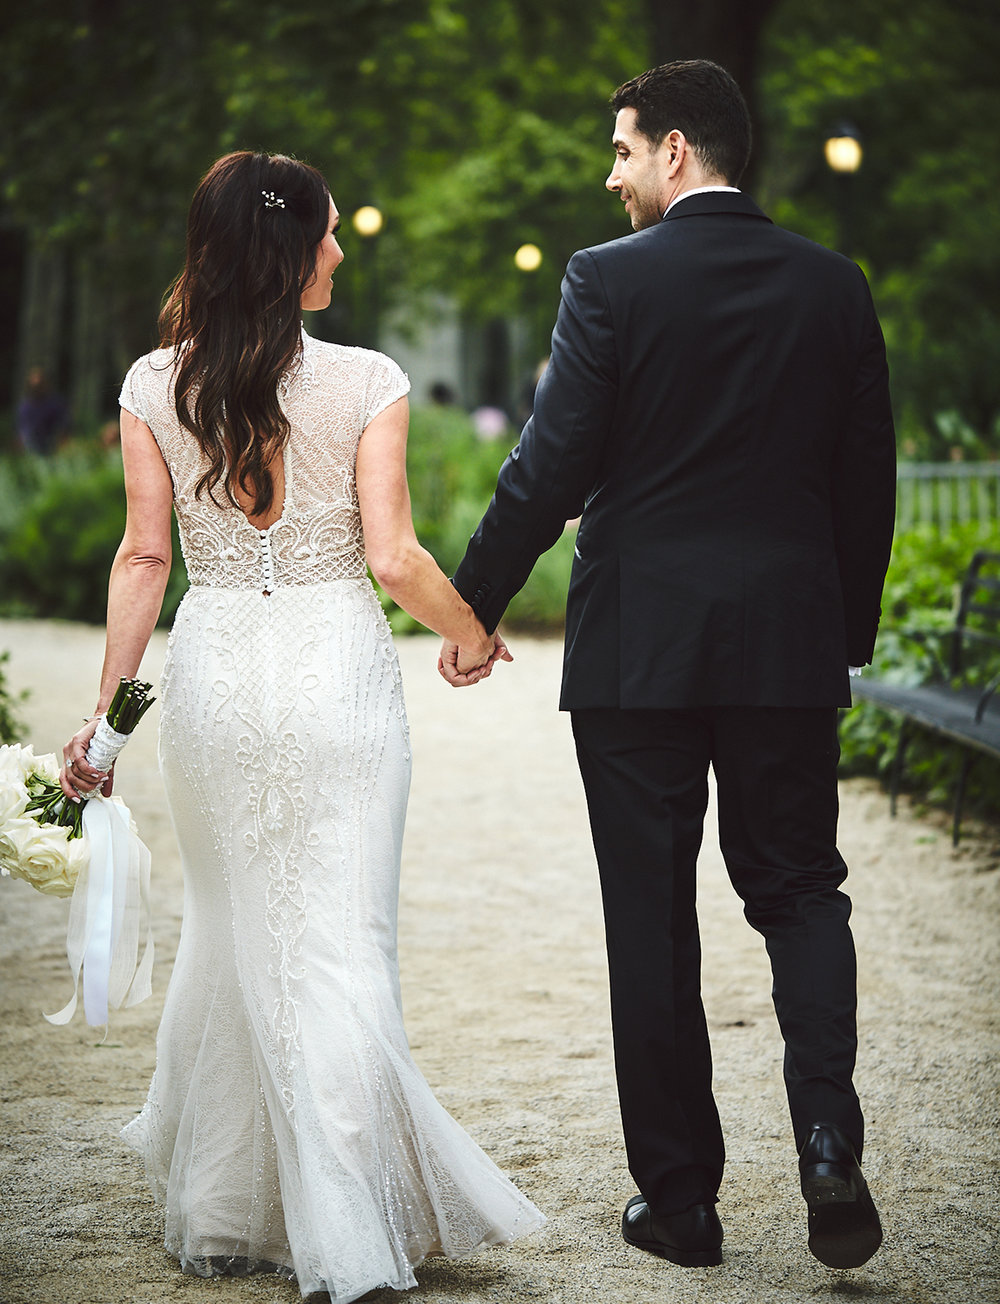 180622_BatteryGardensWeddingPhotography_NYCWeddingPhotographer_BriJohnsonWeddings_0063.jpg